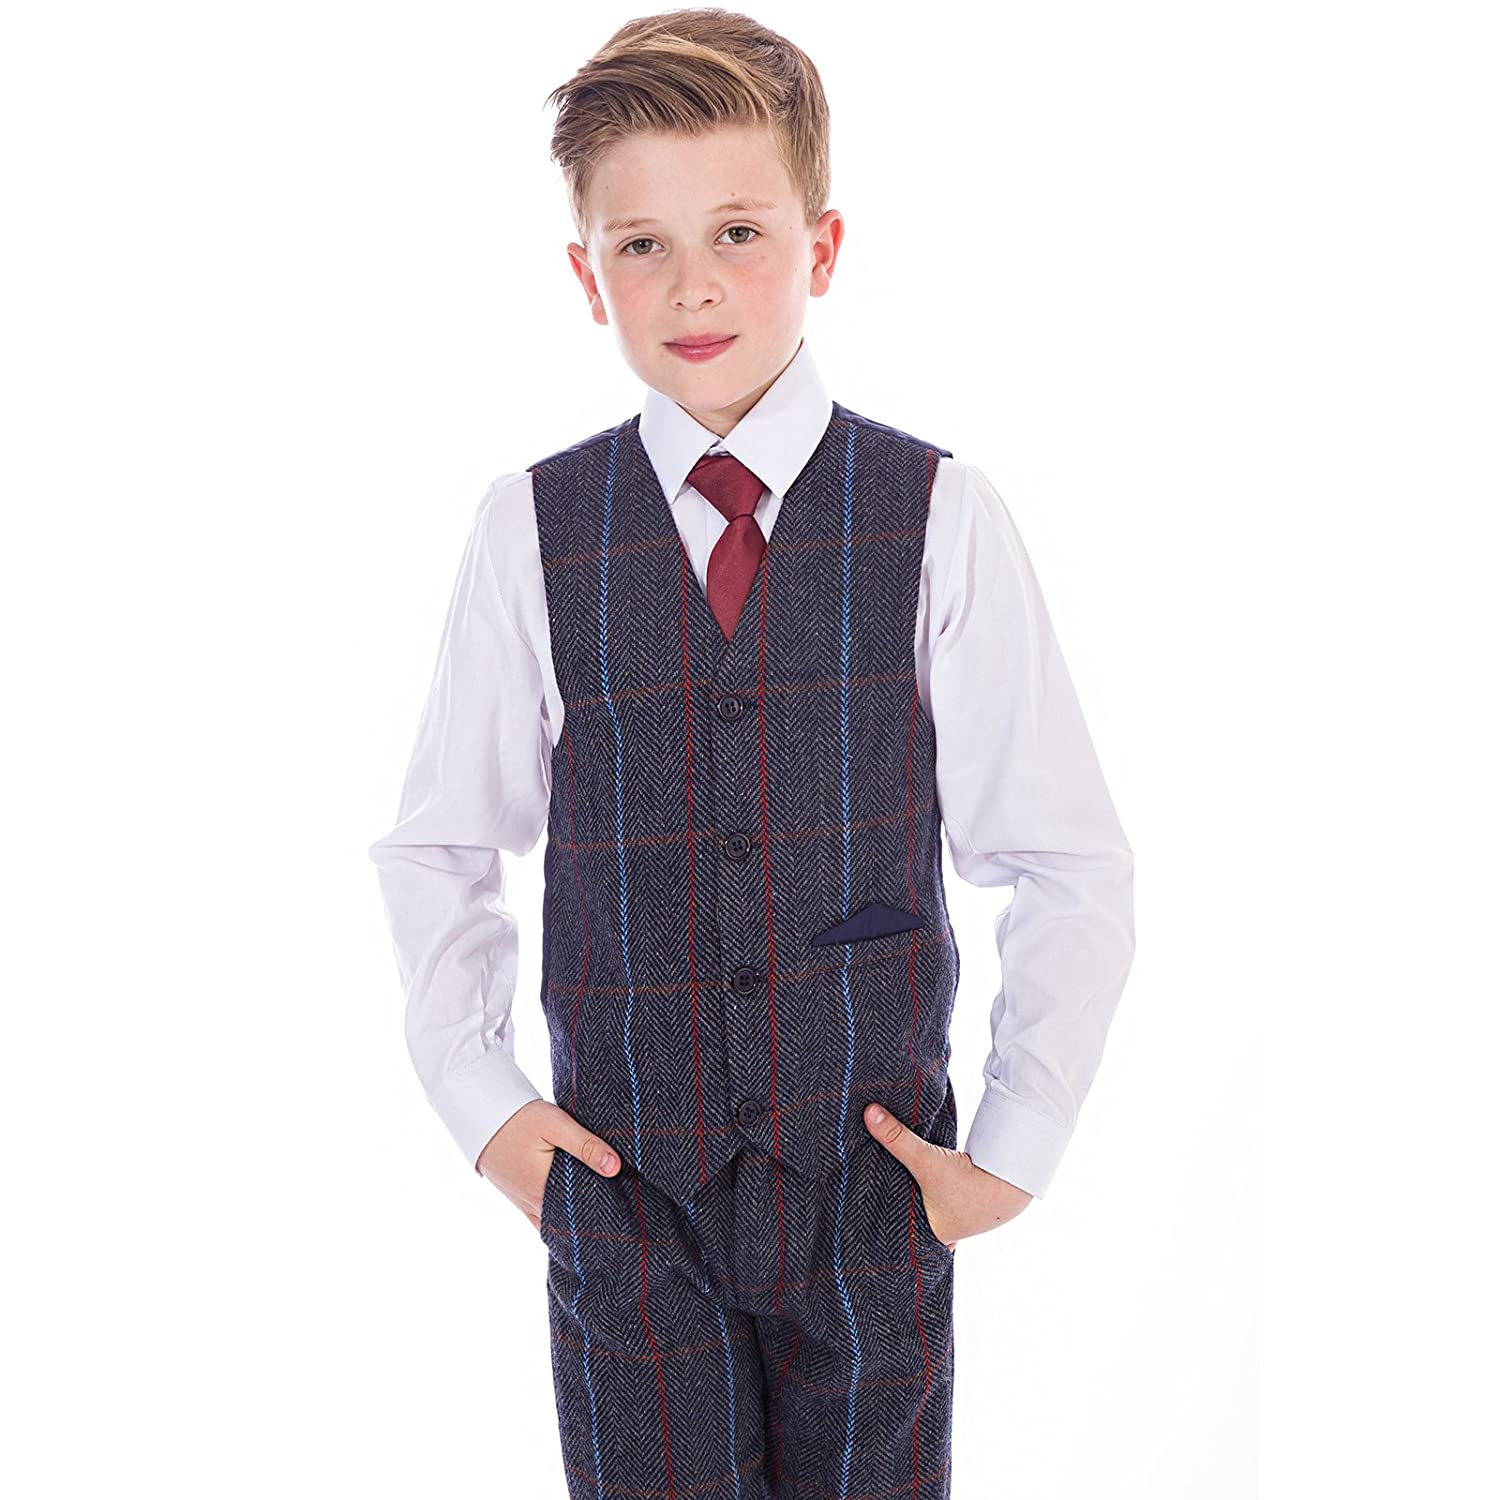 Vivaki Boys Navy Check Tweed Suit, 4 Piece Boys Wedding, Page Boy, Party Outfit, Boys Grey Suit, 0/3 Months to 12 Years